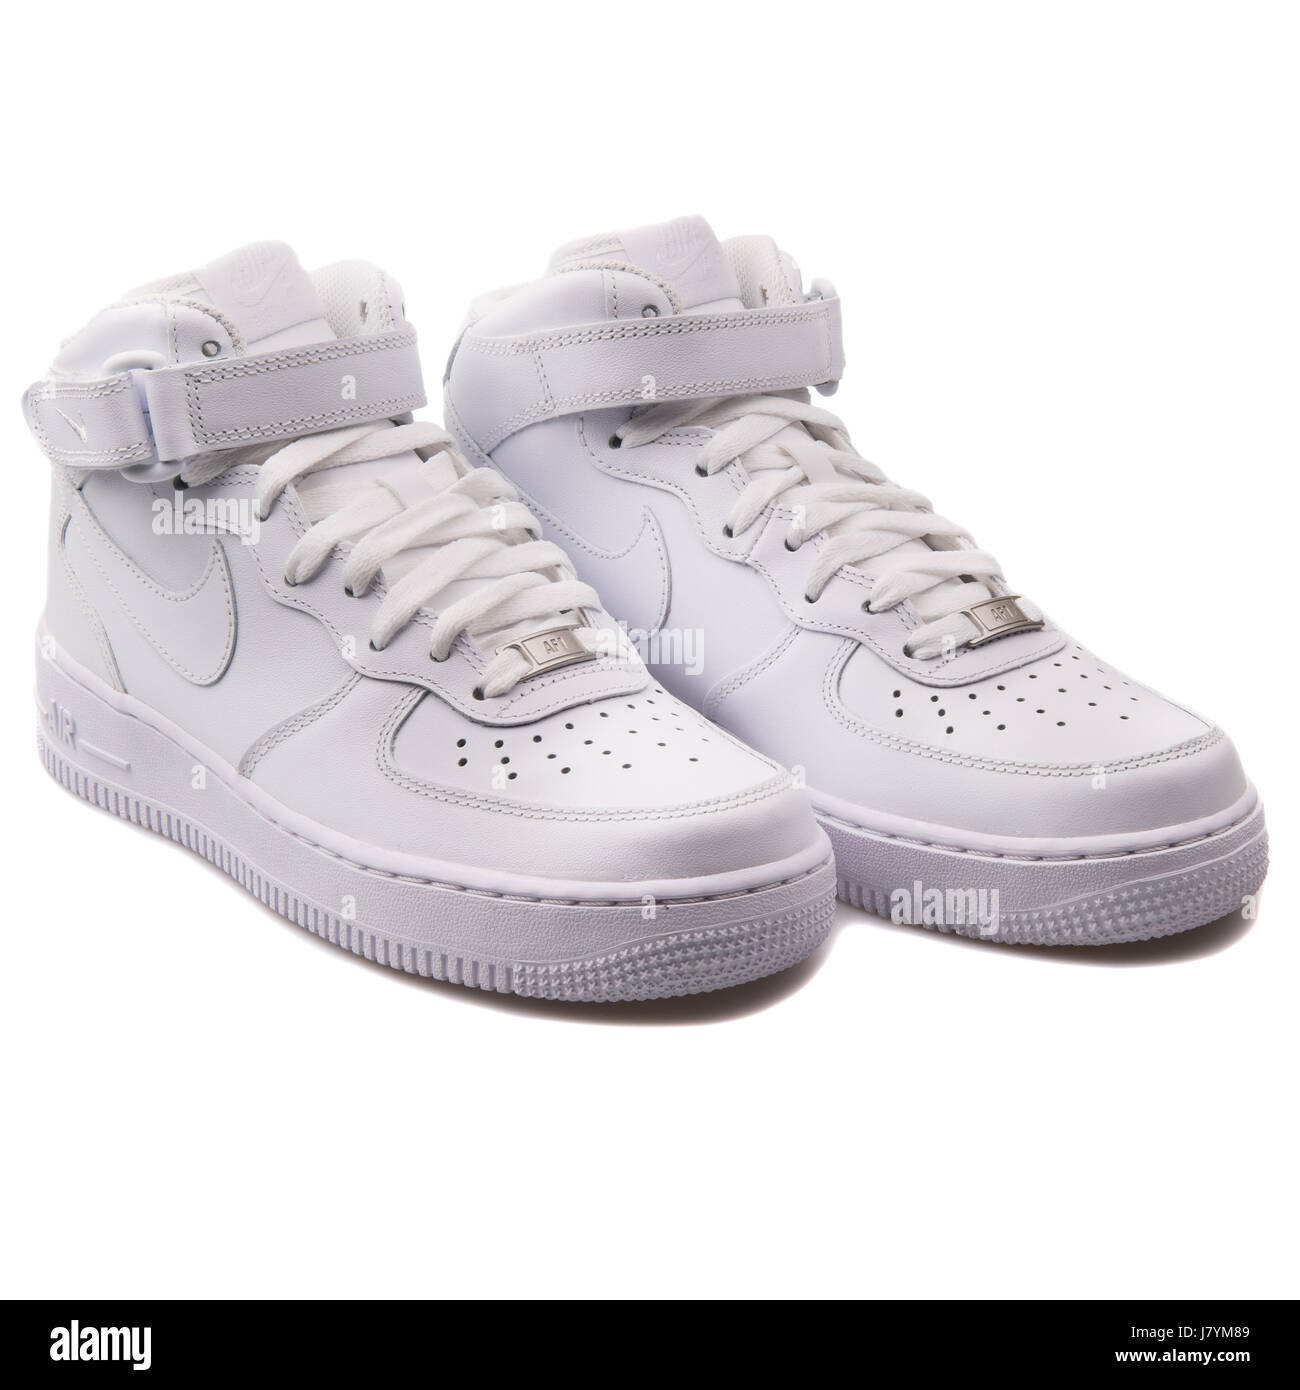 official photos 58763 baf3a Nike WMNS Air Force 1 Mid  07 LE White Women s Sports Sneakers - 366731-